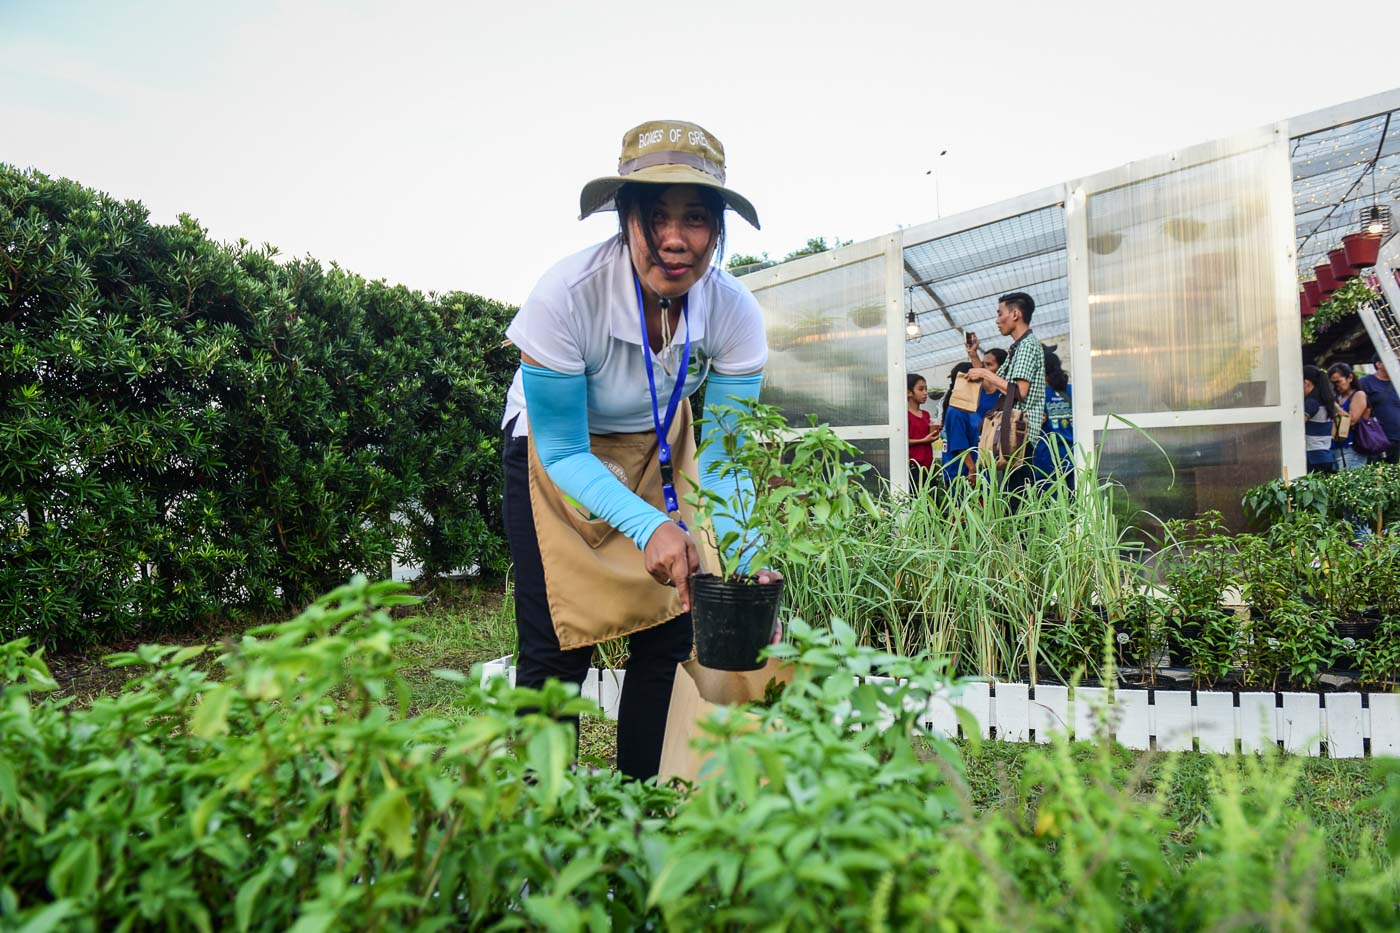 Freshly-picked greens from the in-mall garden. Photo by LeAnne Jazul/Rappler